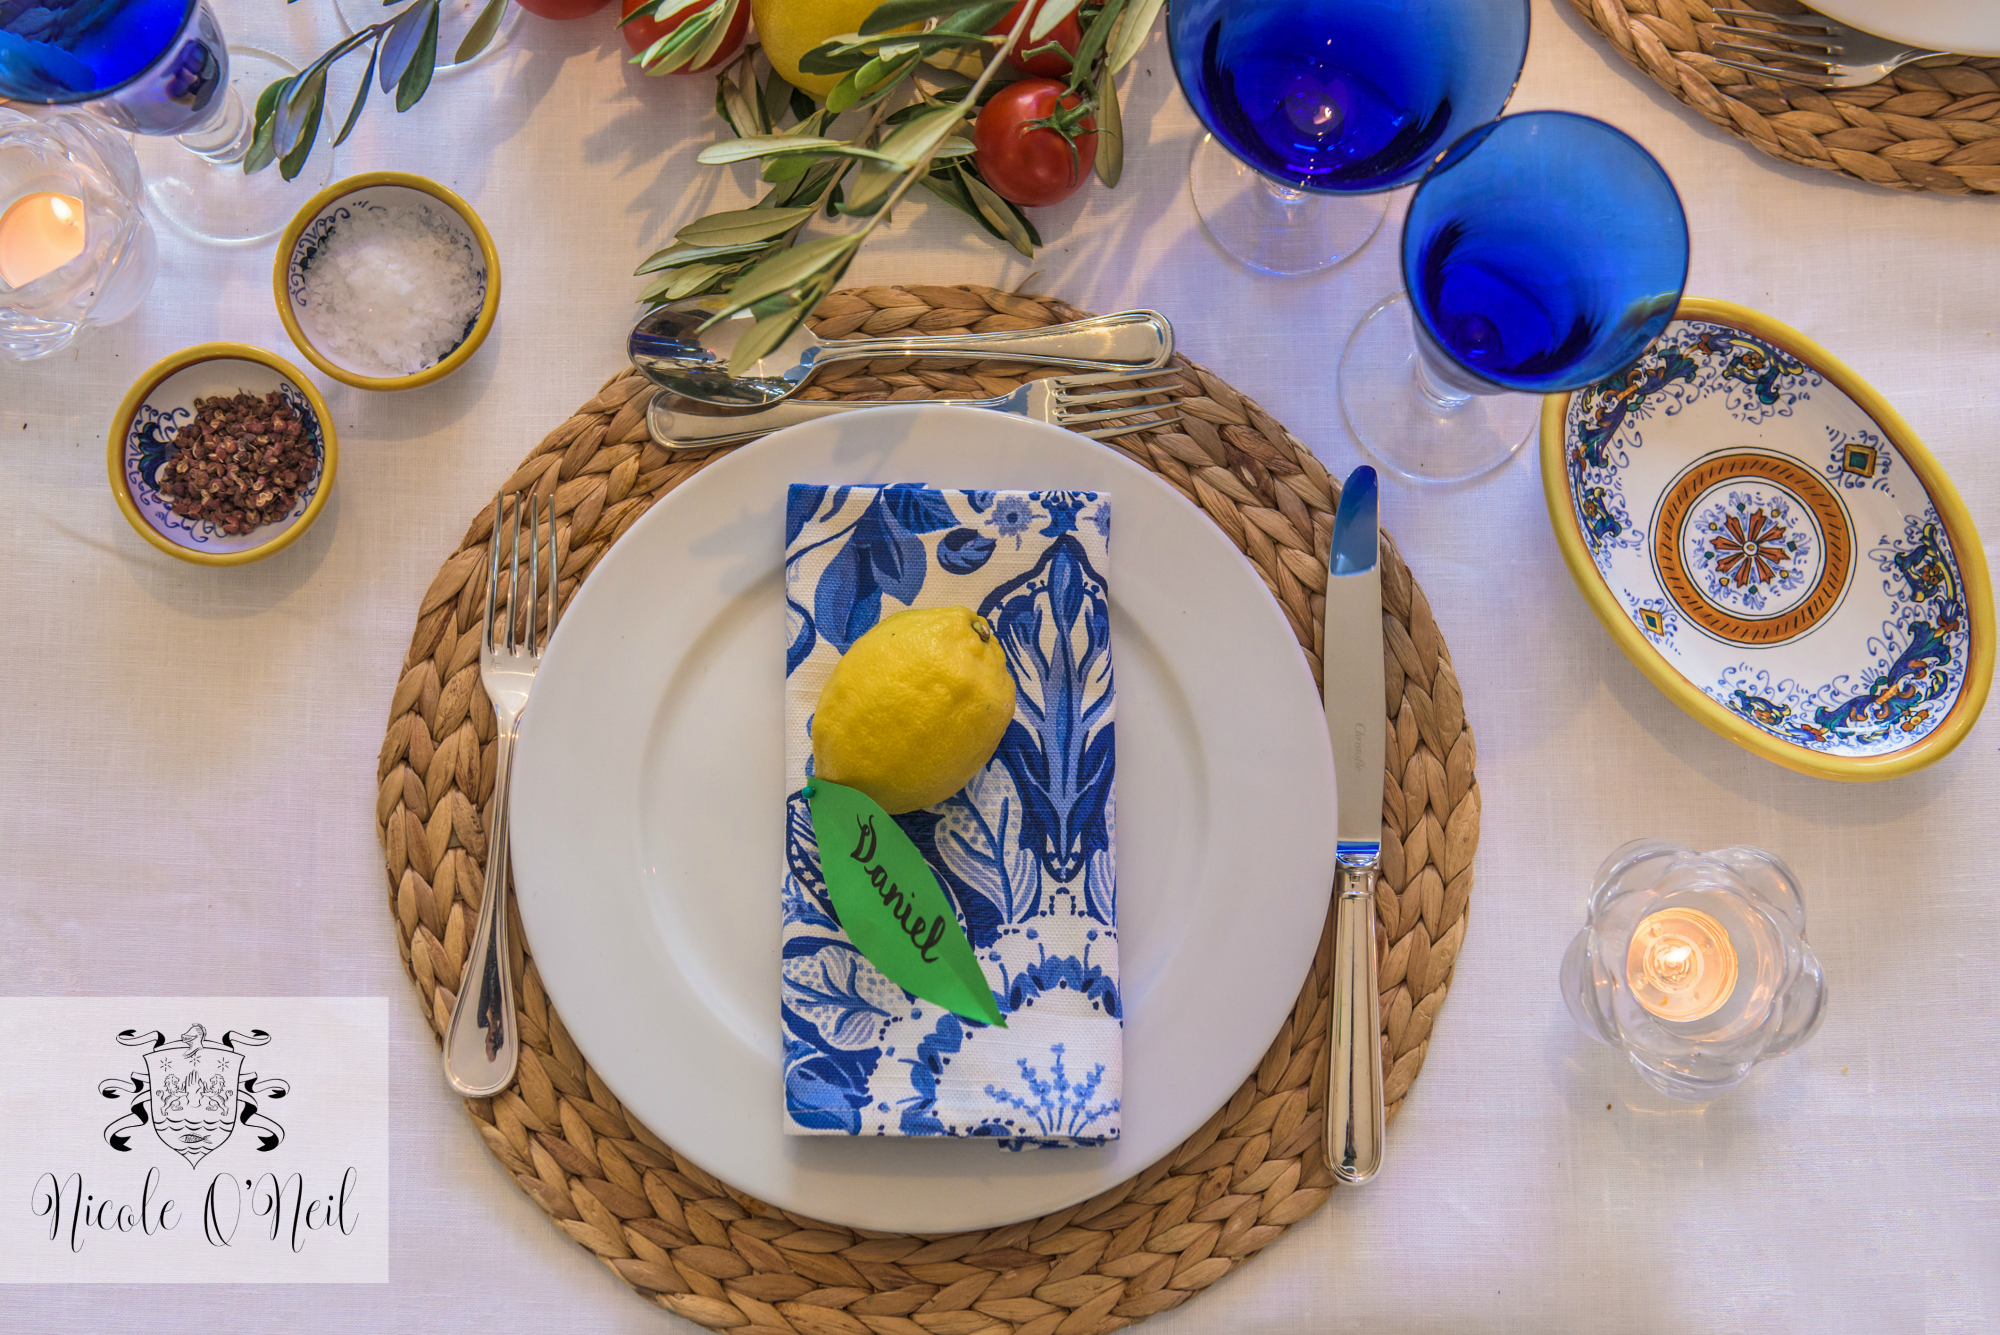 La Dolce Vita Mediterranean Inspired Table Setting for Parties - Lemon, Blue and White Italian Themed Dinner Party Tablescape - Greek Theme Birthday